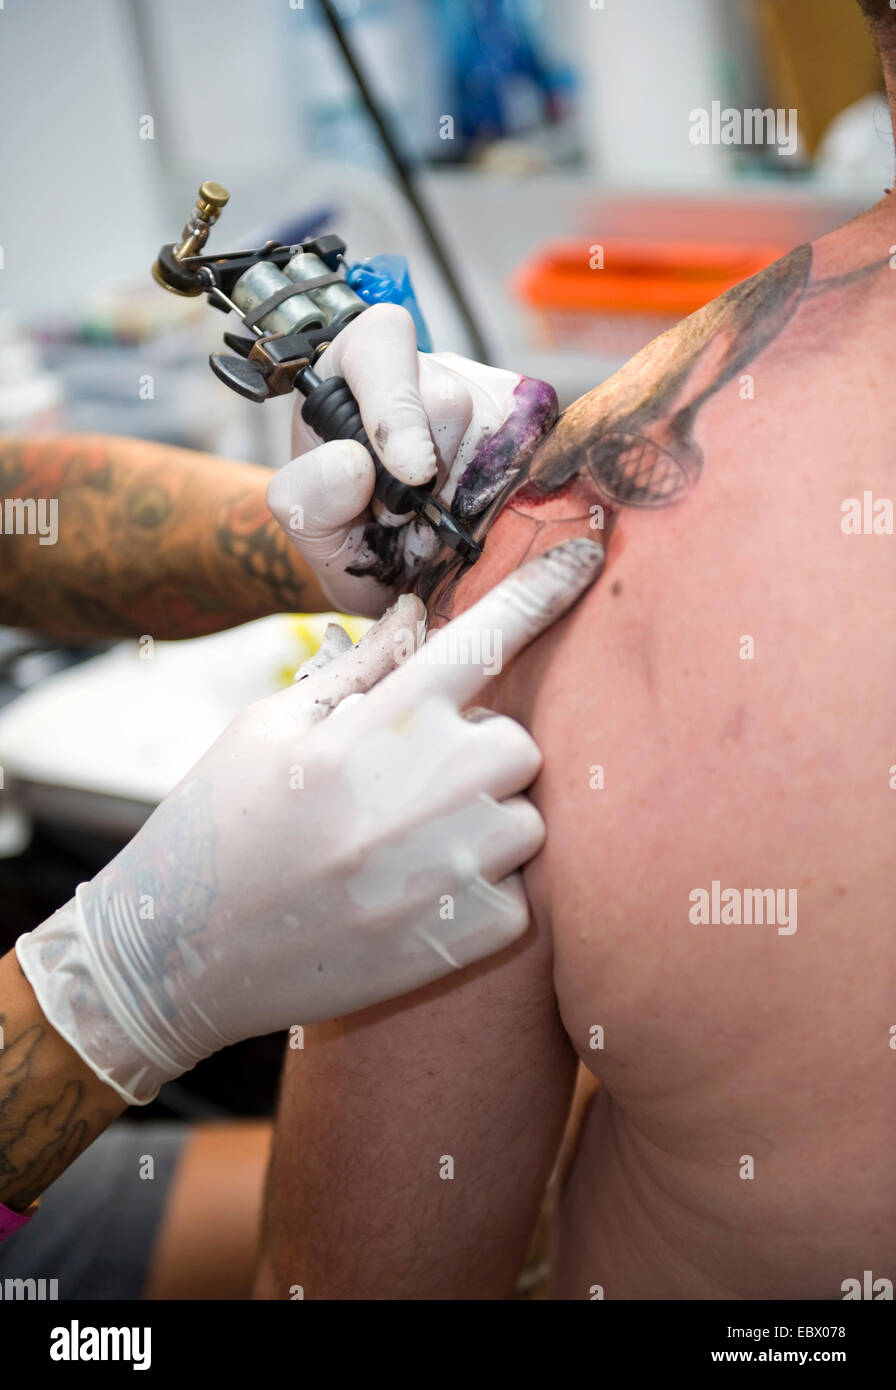 tattooing of a back of a man - Stock Image